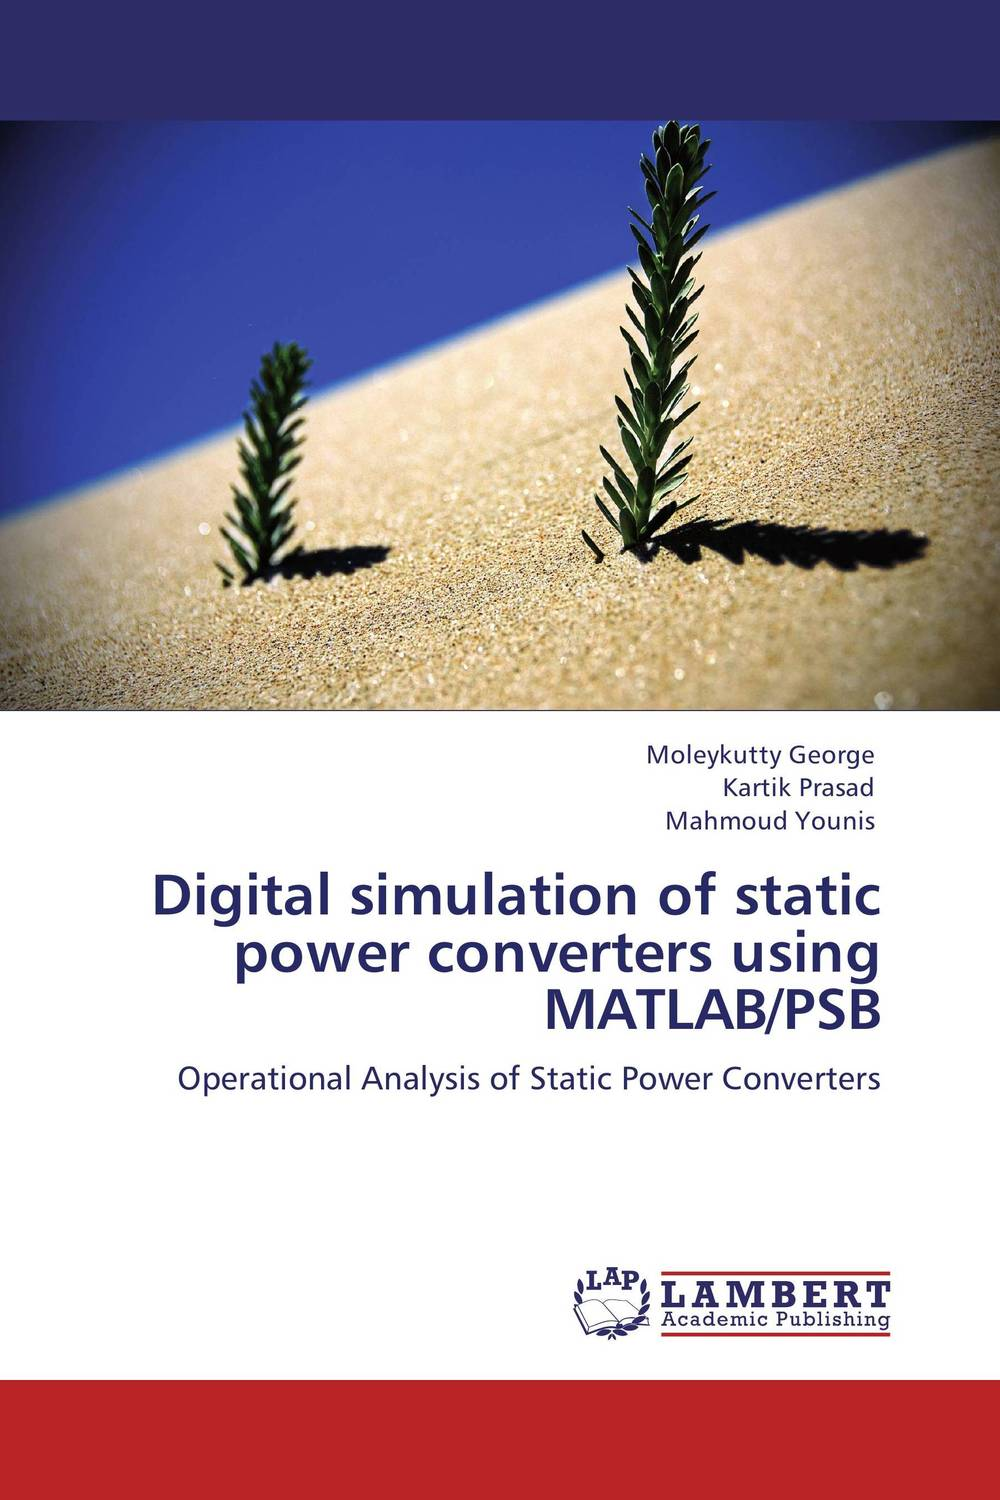 Digital simulation of static power converters using MATLAB/PSB i gottlieb gottlieb power supplies switching regulators inverters and converters paper only